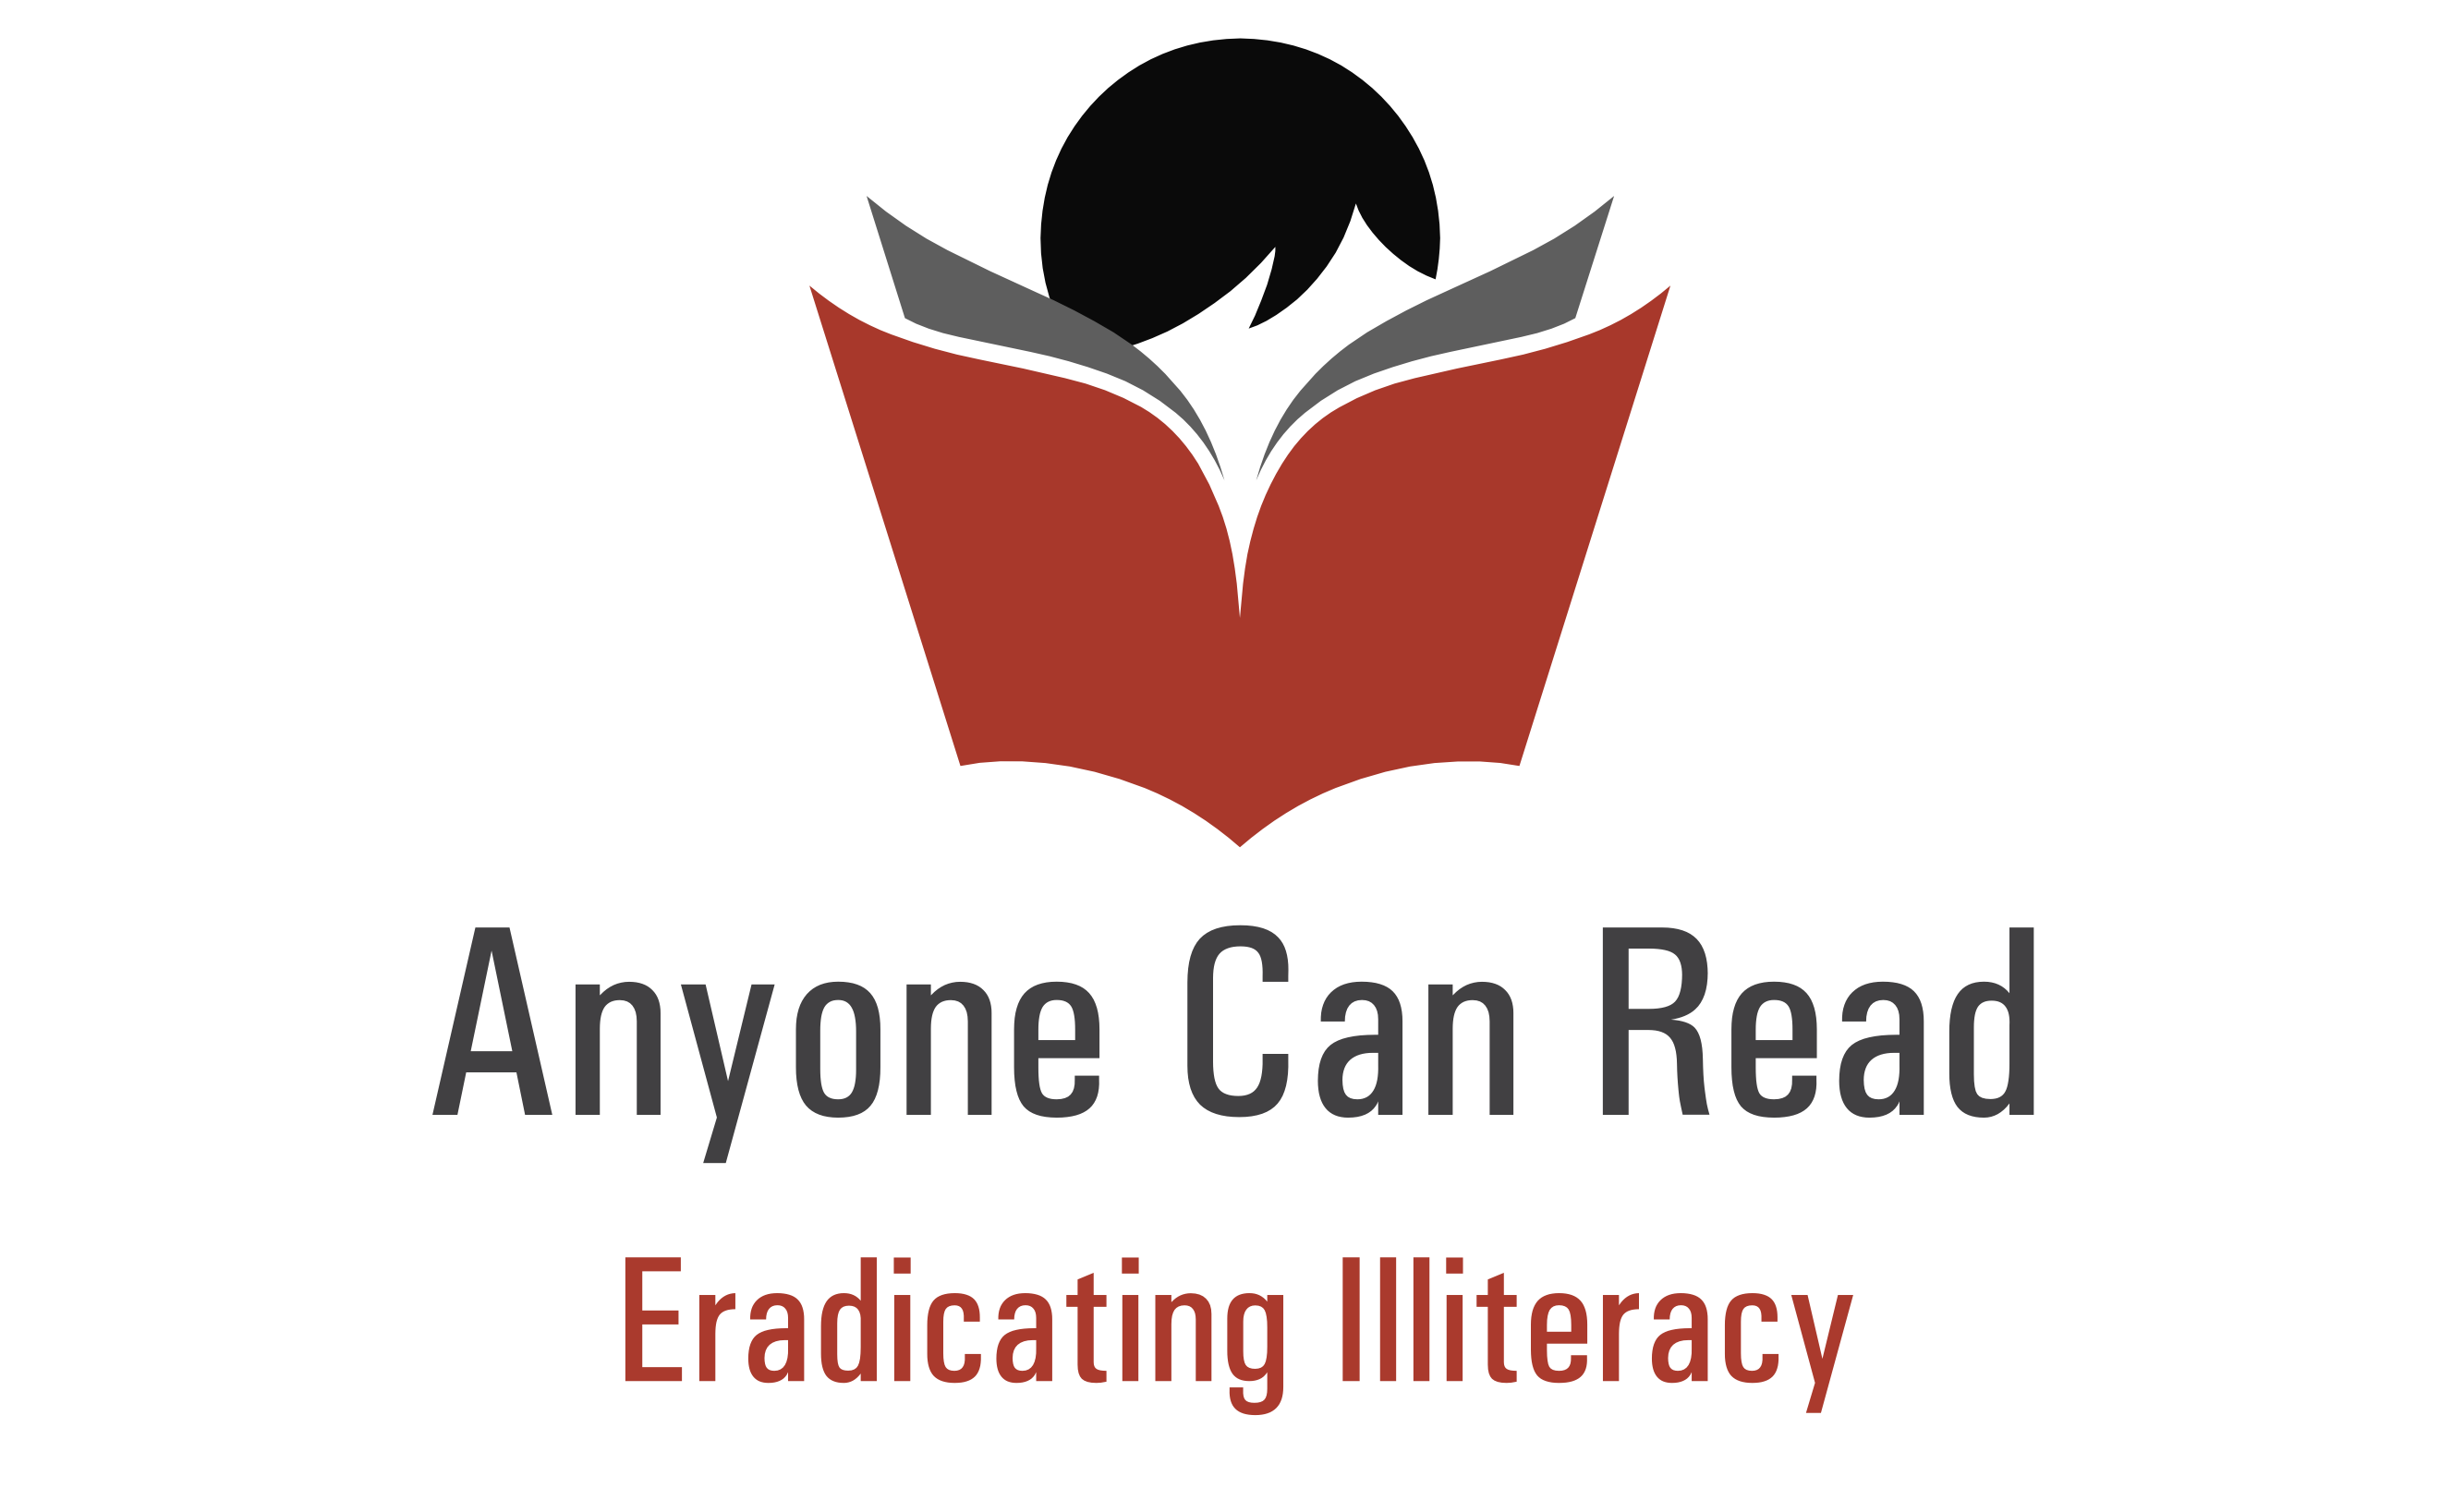 Anyone Can Read - Eradicating Illiteracy